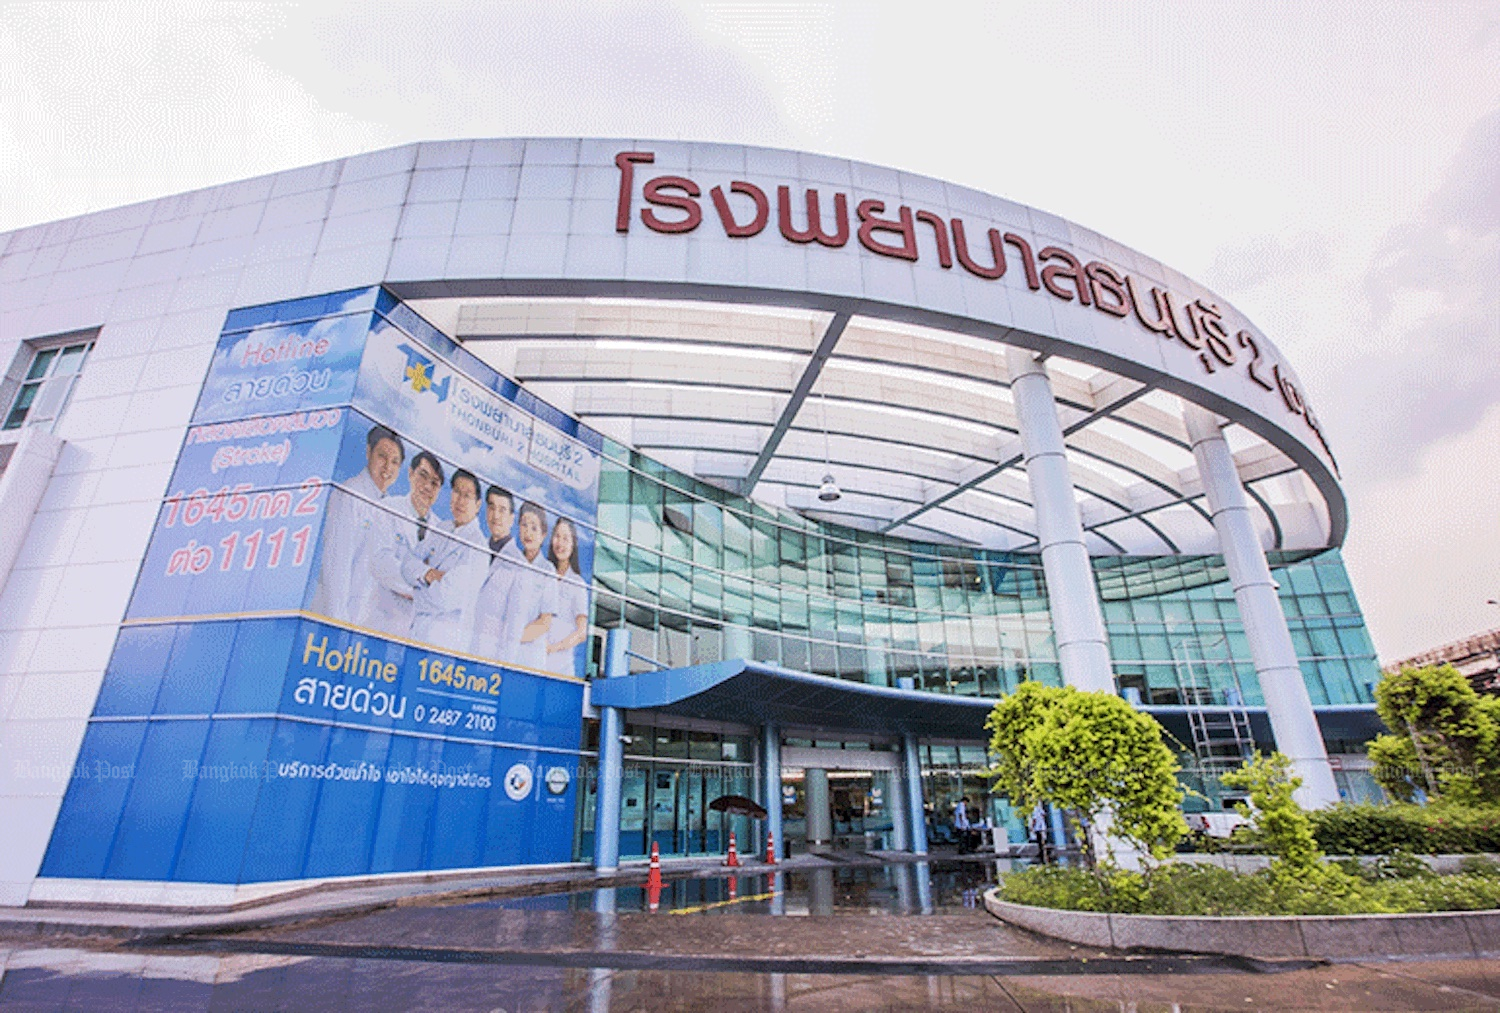 Thonburi Hospital 2 is one of seven facilities operated by the company that Dr Boon Vanasin founded. (Post File Photo)